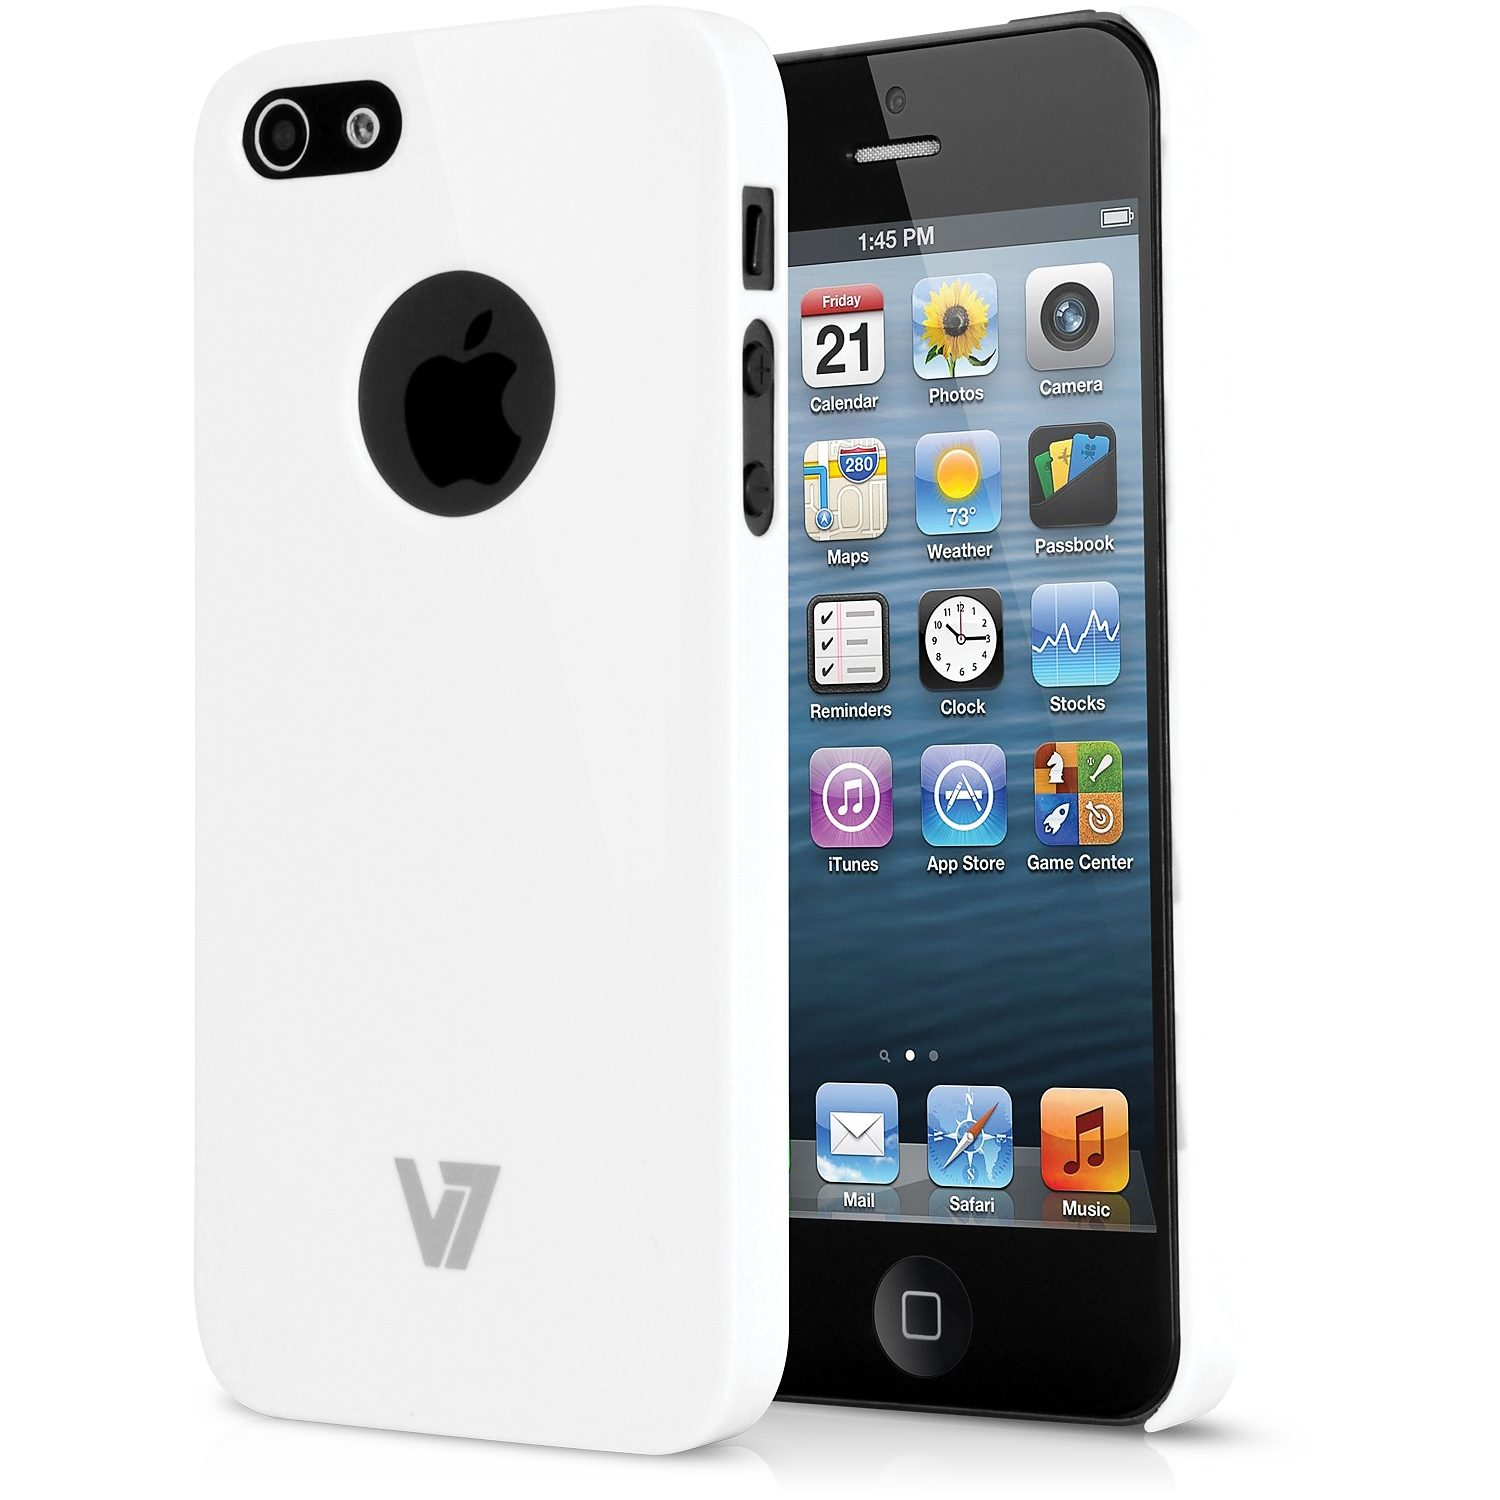 V7 Case »V7 HIGH GLOSS CASE IPHONE 5 5S«